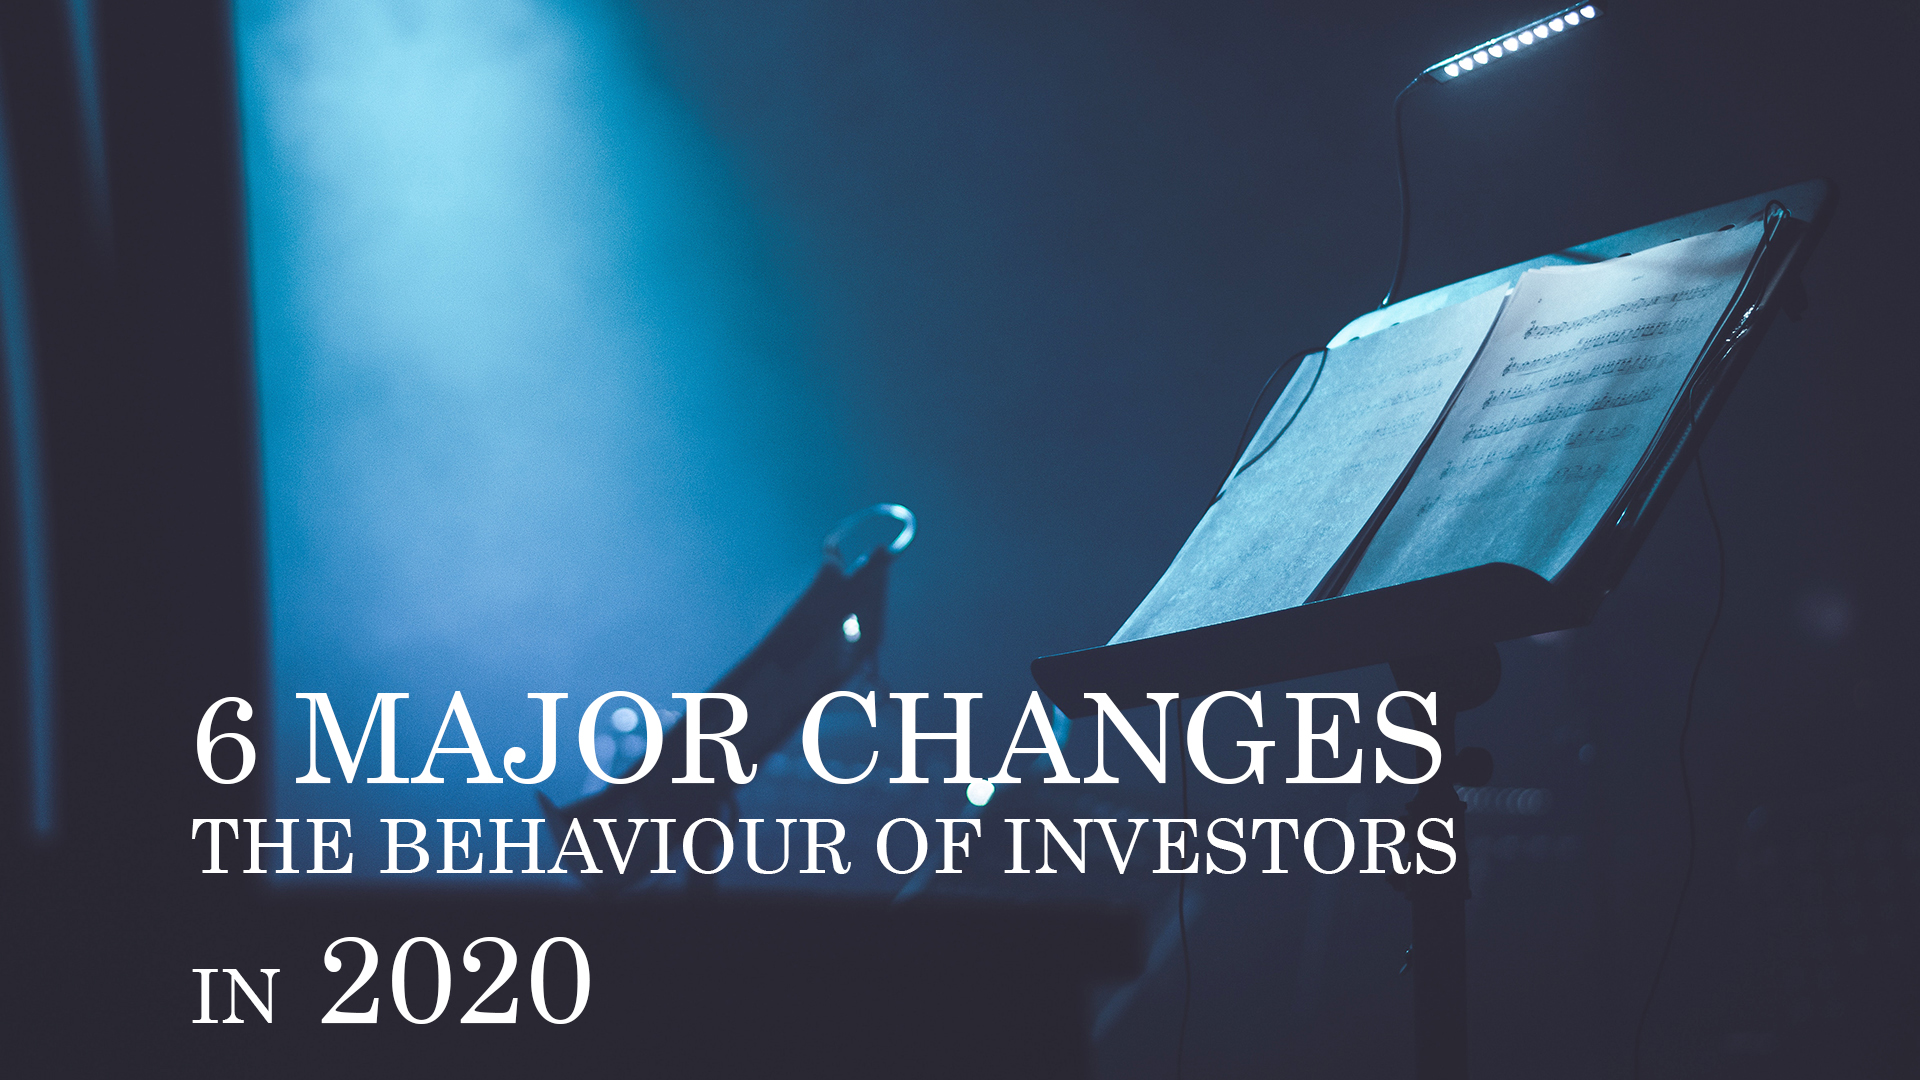 6 MAJOR CHANGES IN THE BEHAVIOUR OF PRIVATE INVESTORS AND THEIR PORTFOLIOS IN 2020